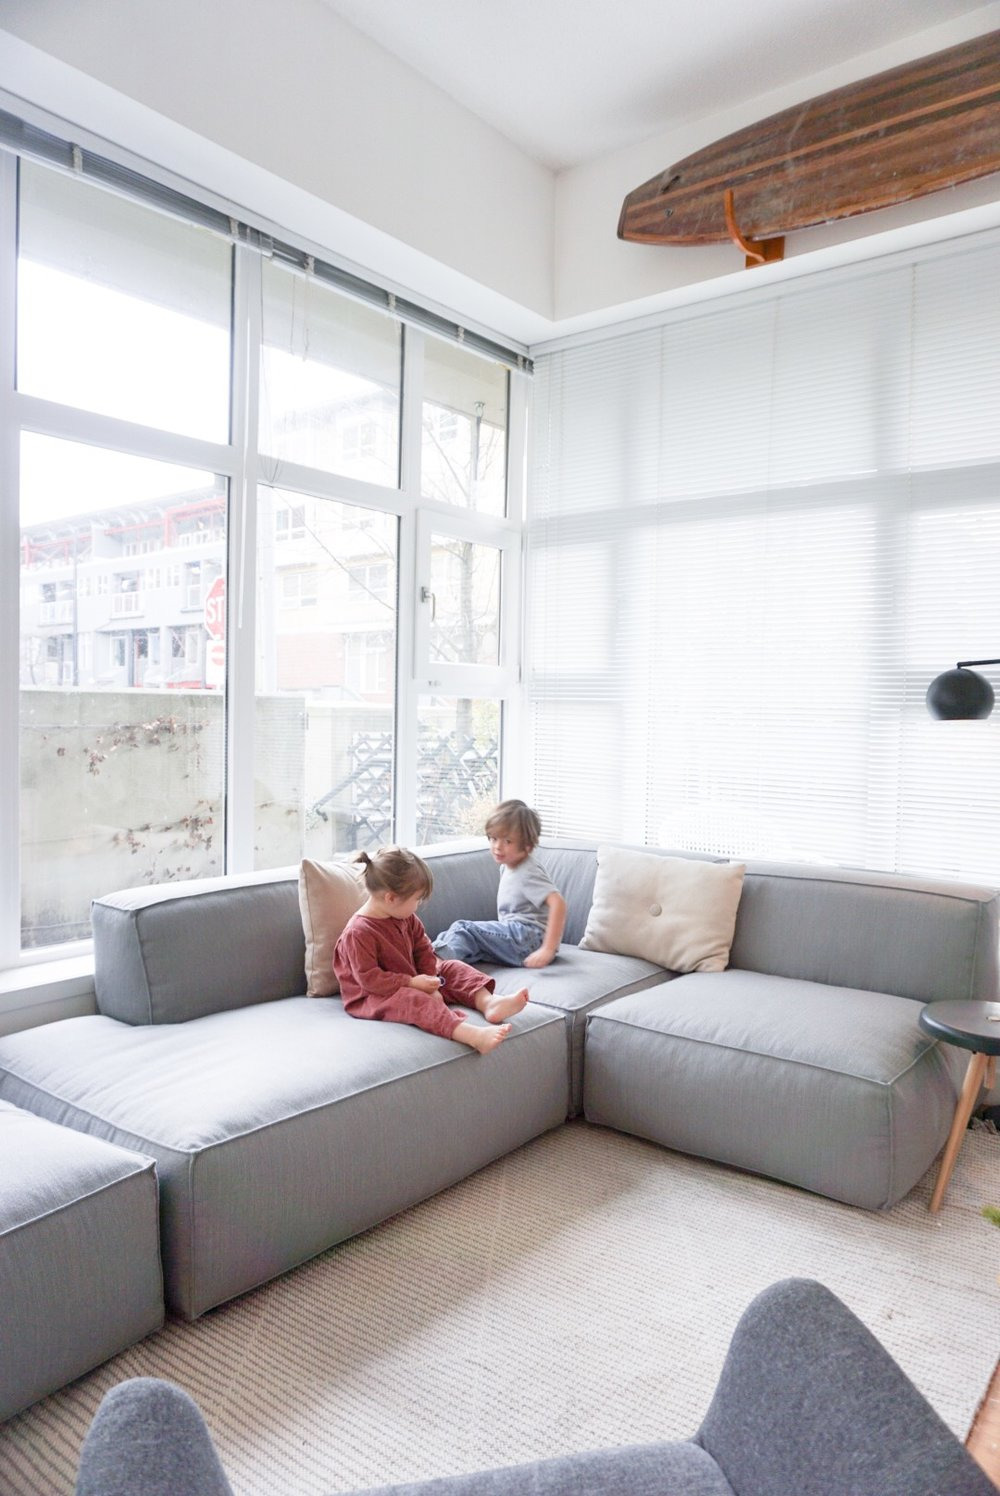 600 Sq Ft Apartment Decorating Ideas Fresh A Modular sofa for Our Small Space — 600sqftandababy